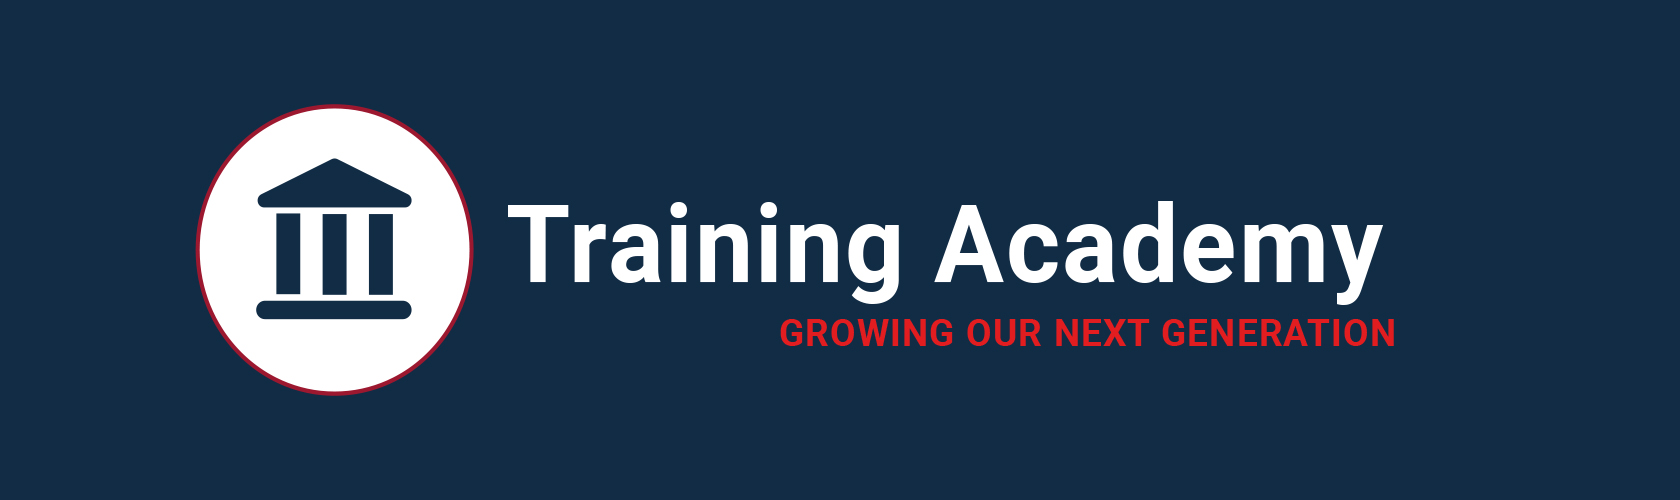 Perspective Training Academy - Growing our next generation